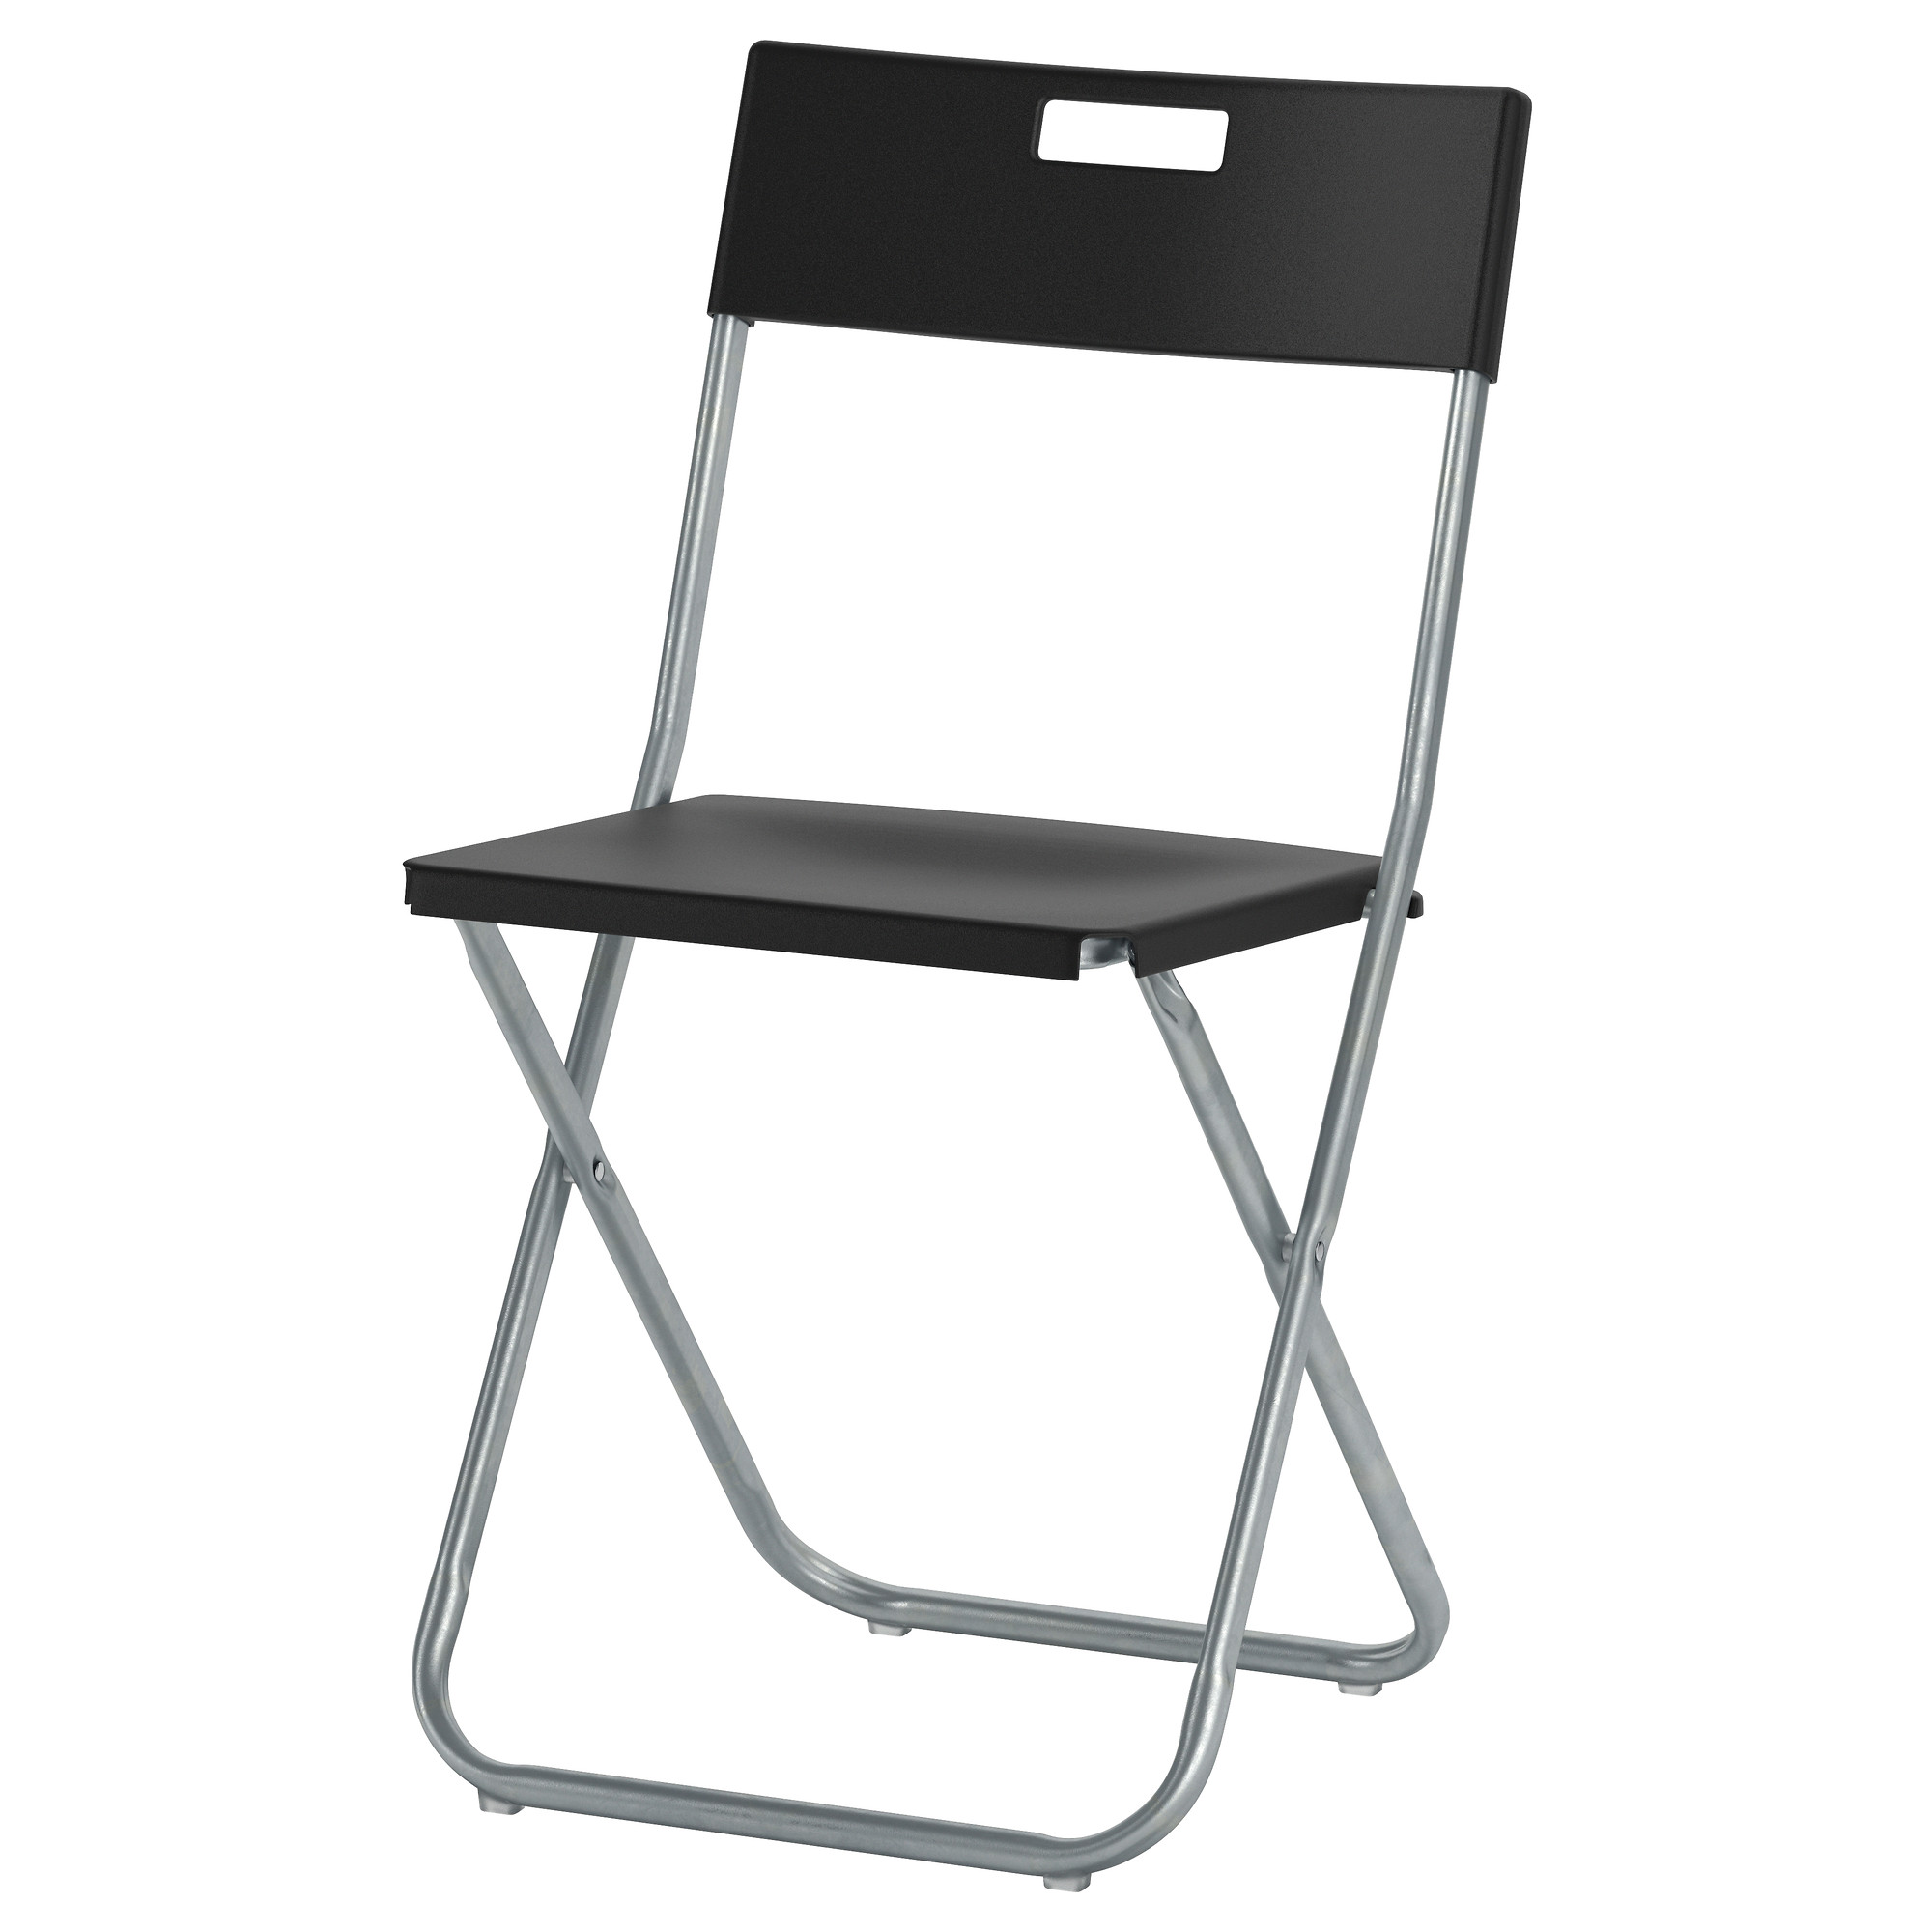 foldable chairs gunde folding chair, black tested for: 220 lb width: 16 1/8 MZYITQC